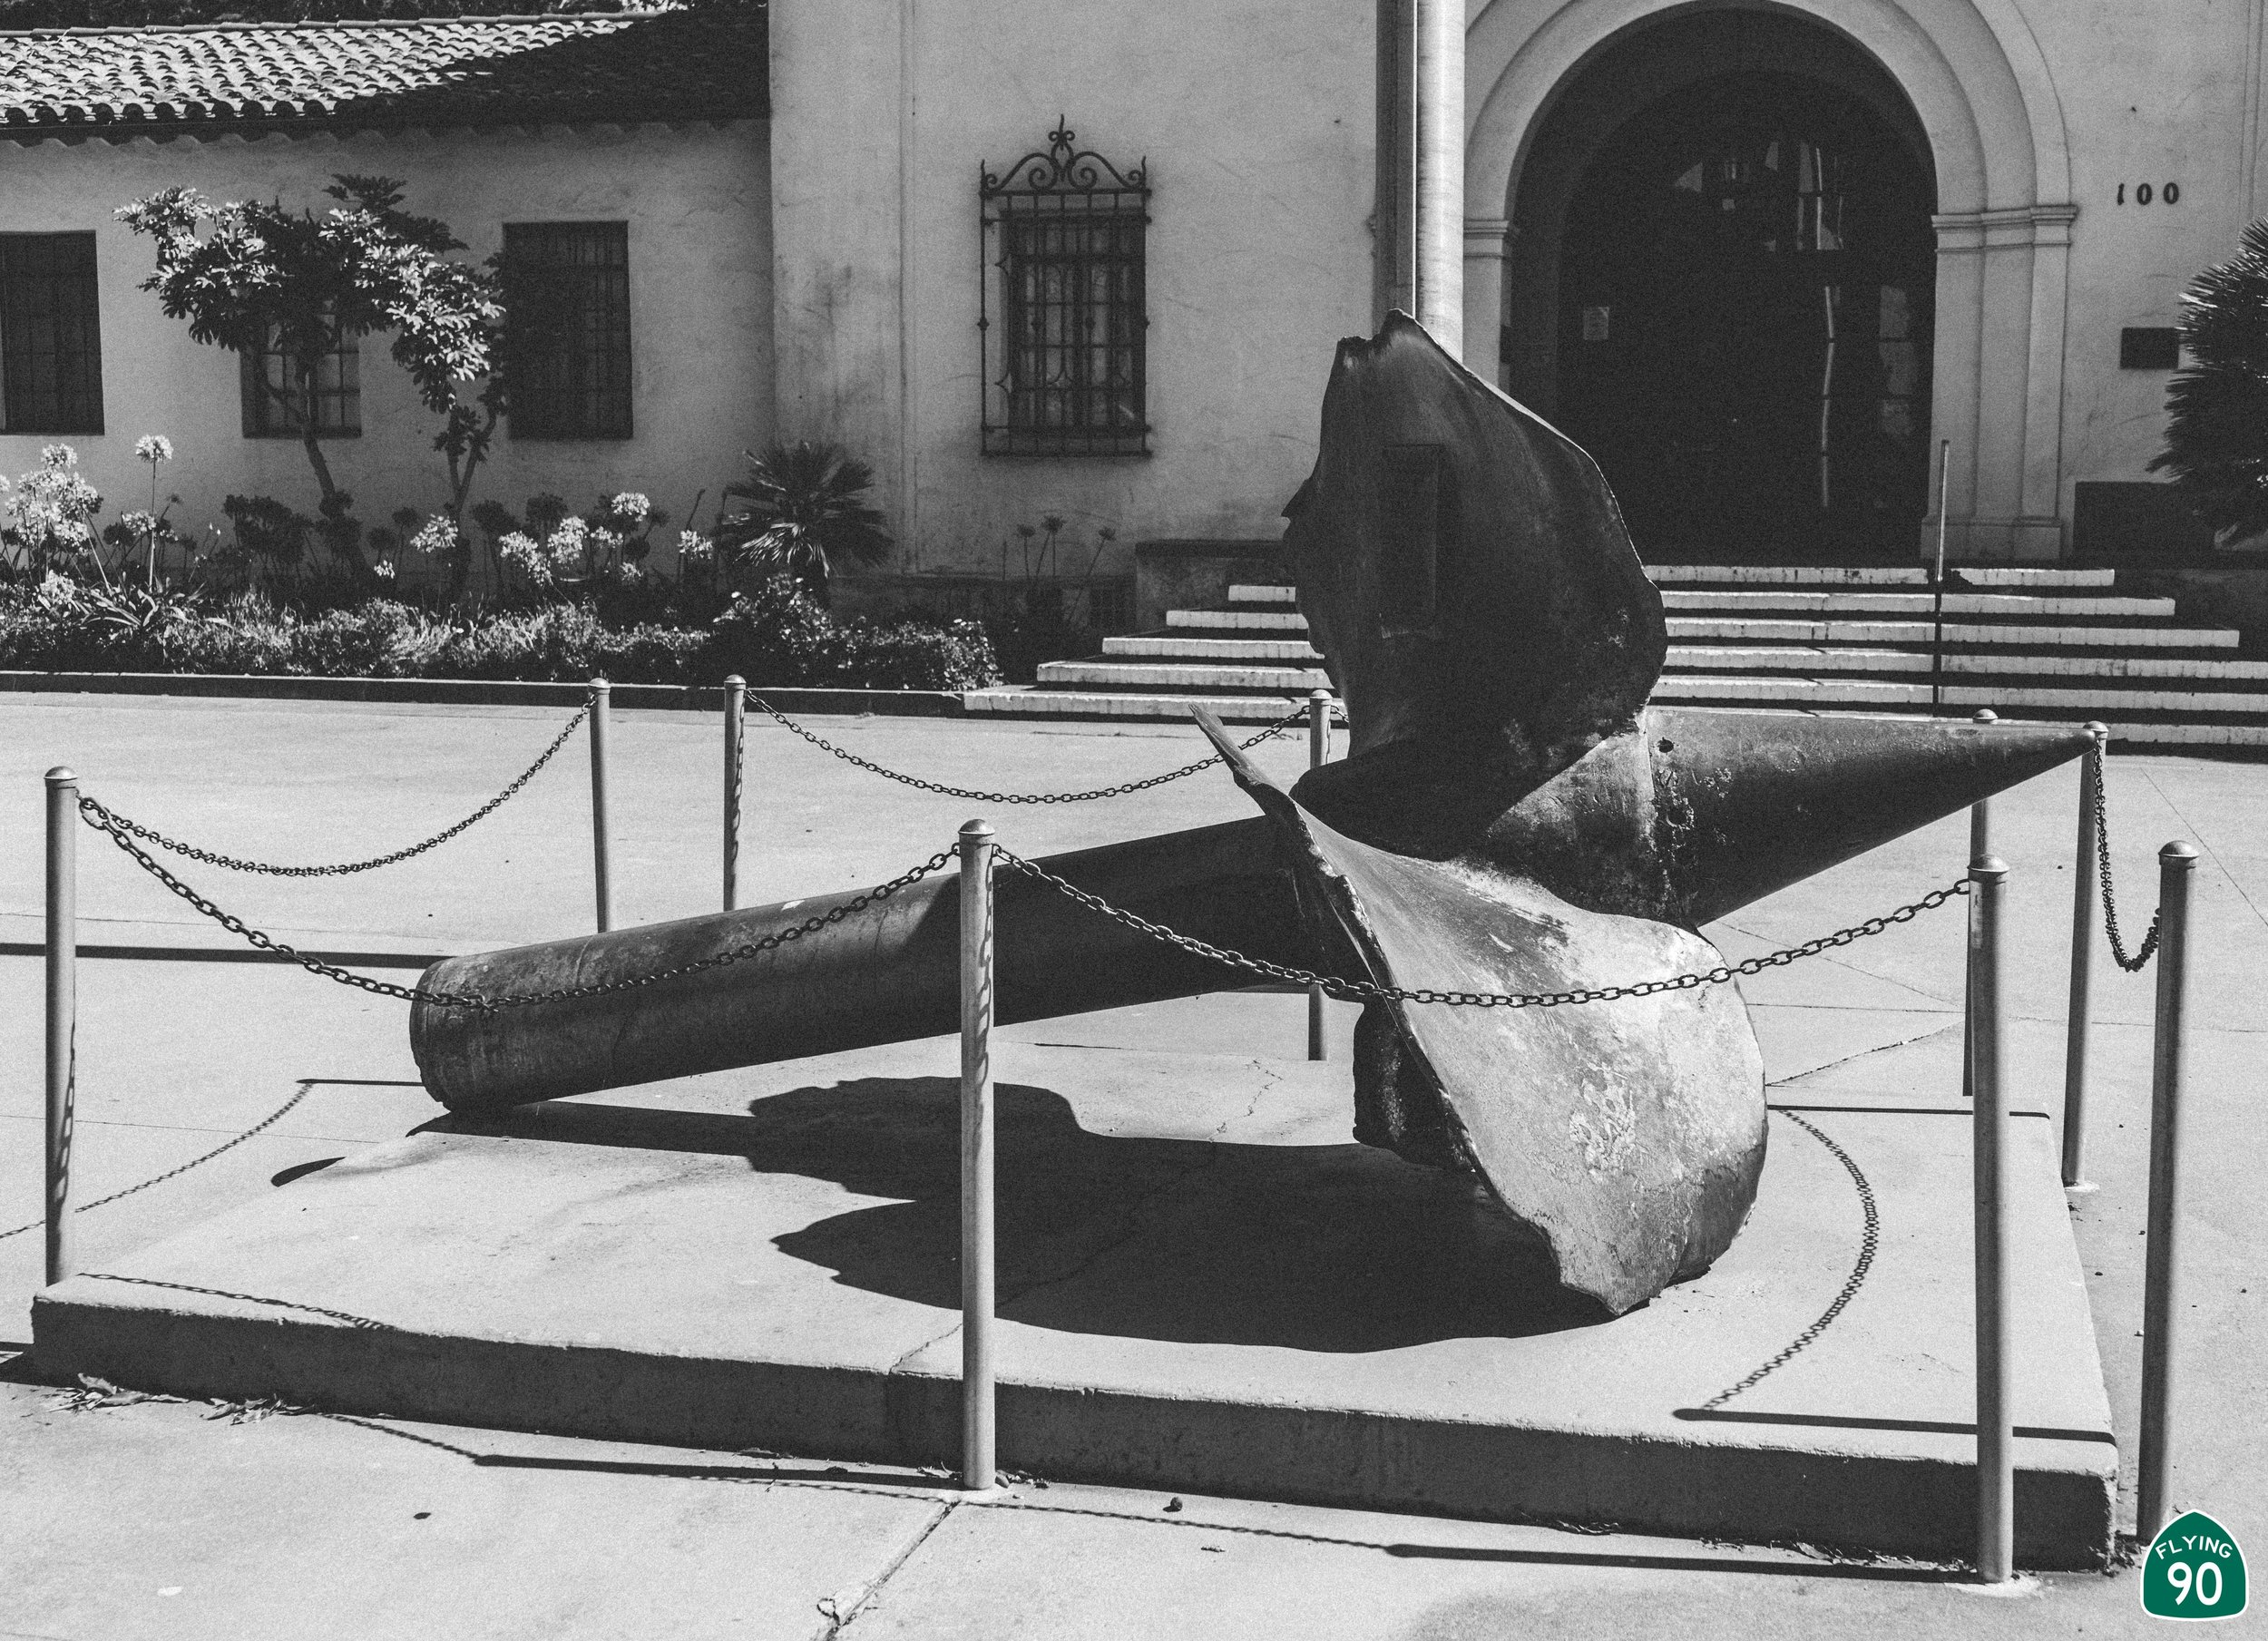 The Lompoc Veterans Memorial Building includes a propeller and propeller staff of a destroyer in honor of the victims of the Honda Point Disaster. On the night of September 8, 1923, seven ships ran aground at Honda Point; 23 were killed and numerous others were injured.